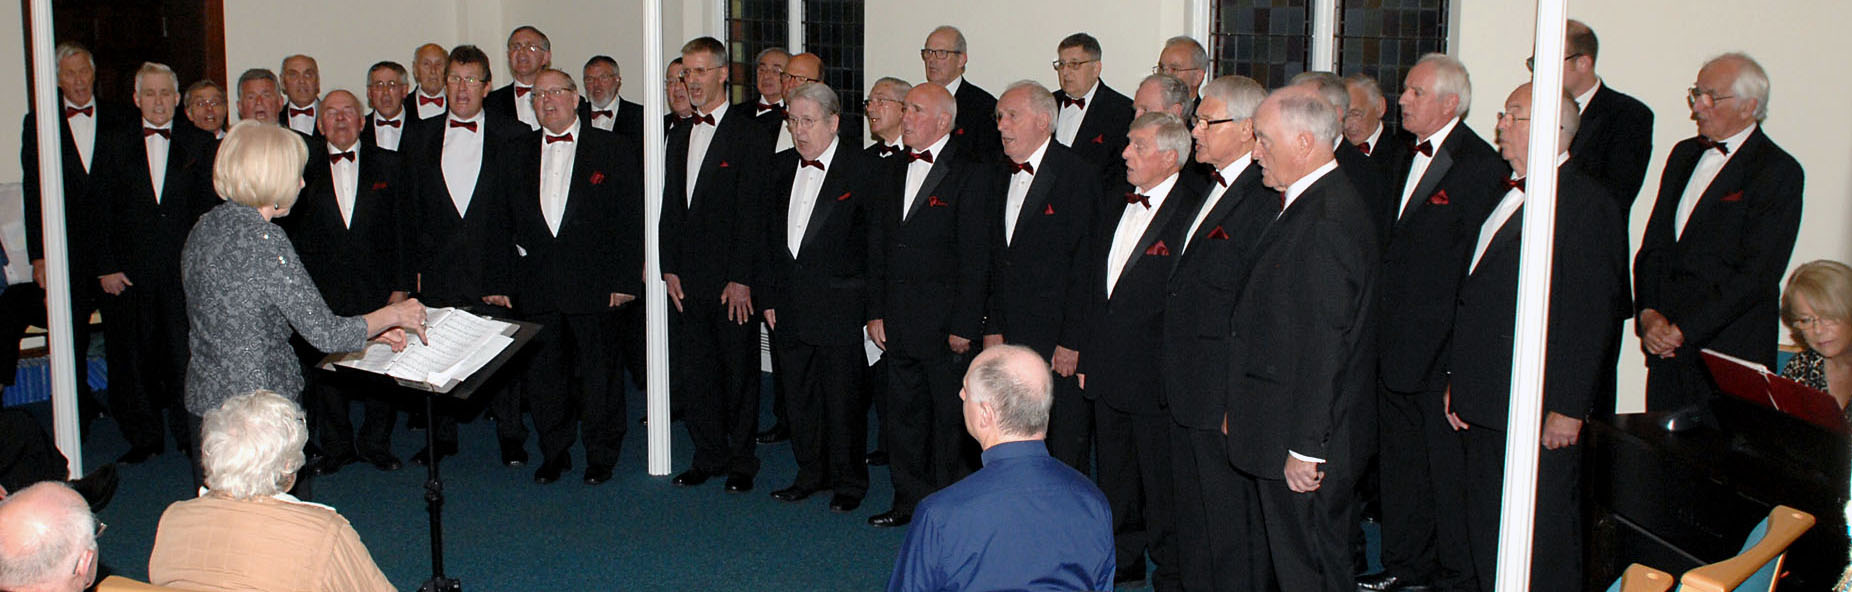 Voice Choir performing on 15 May 2015 at Trinity Church,